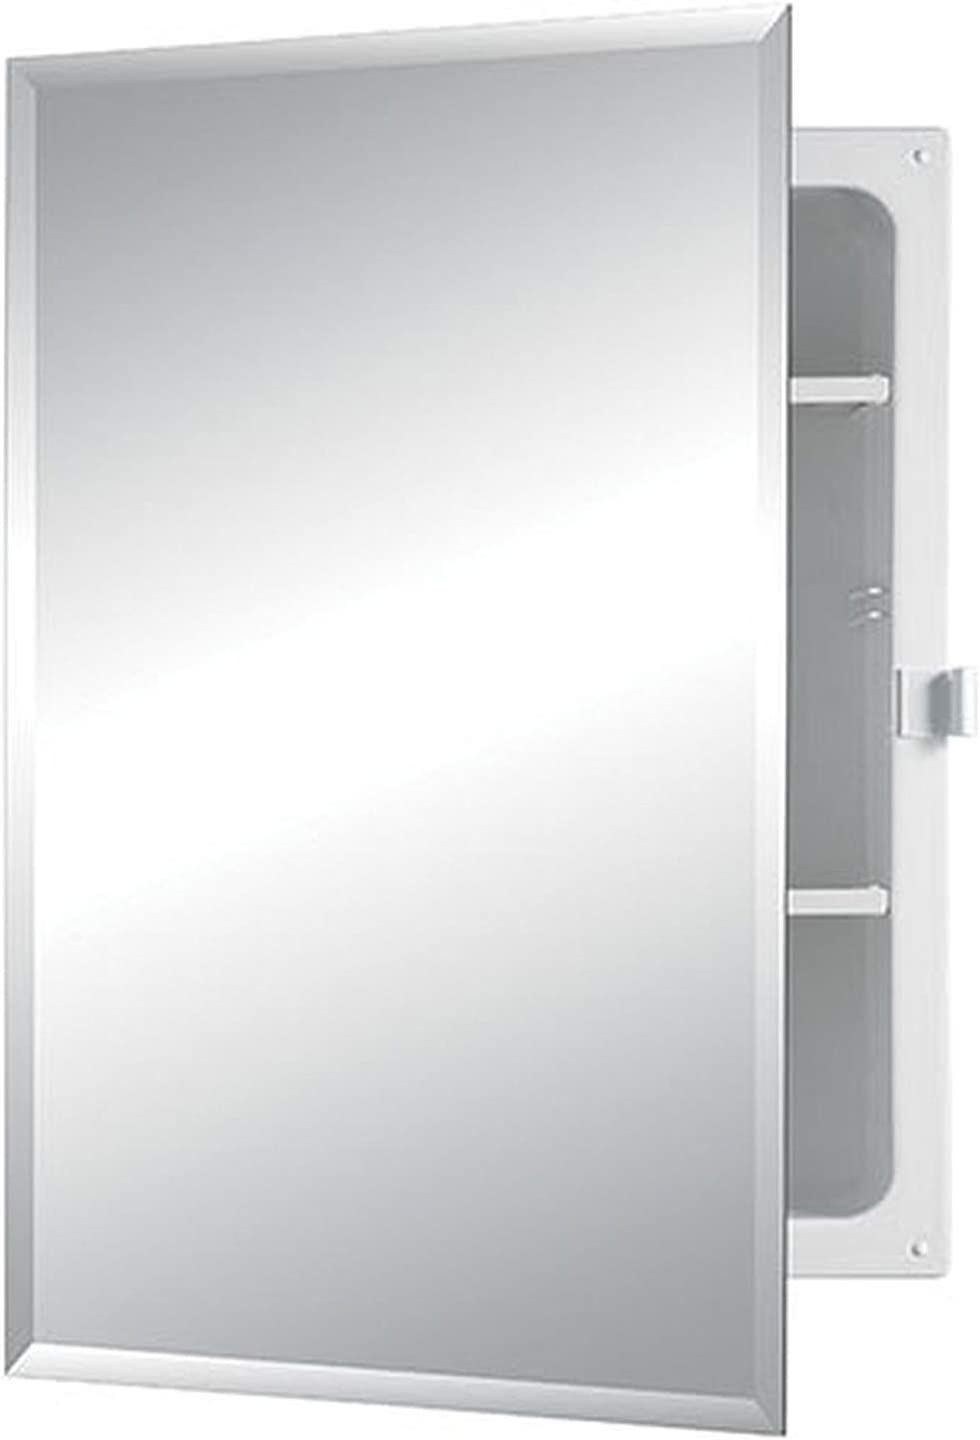 Jensen B7233B85PCX Bevel Mirror Positive Catch Medicine Cabinet